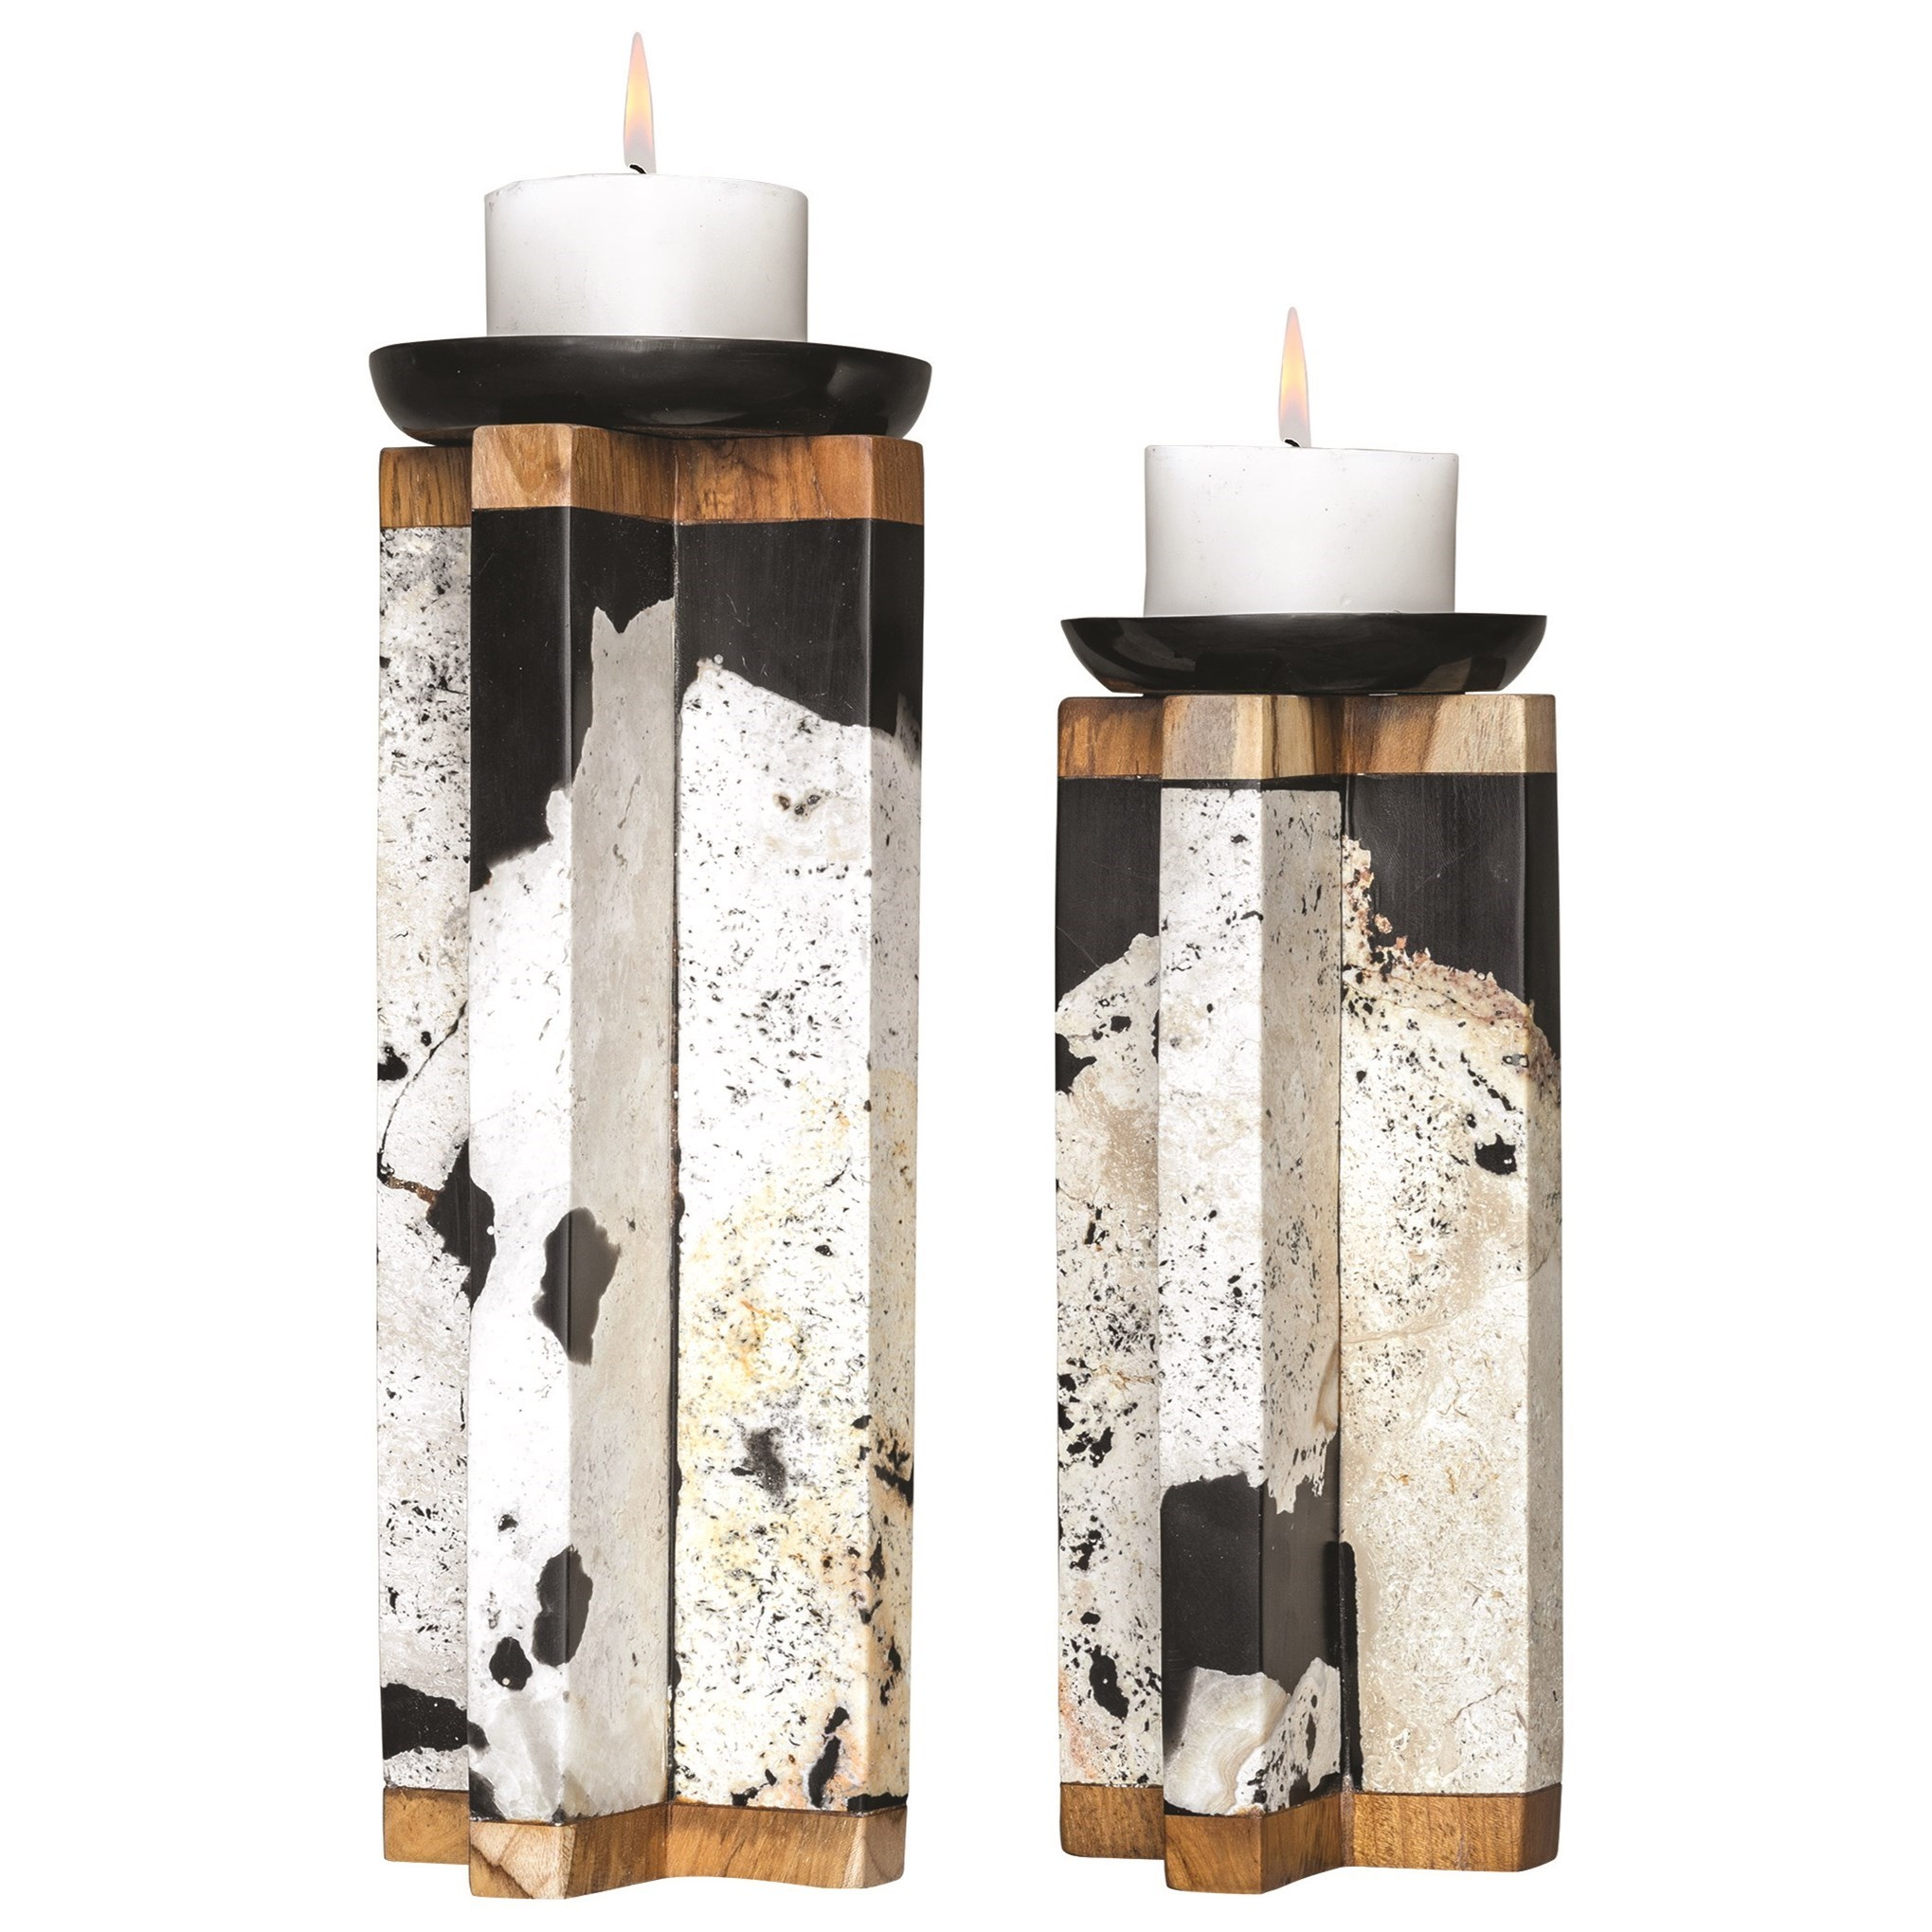 Accessories - Candle Holders Illini Stone Candleholders, S/2 by Uttermost at Furniture and ApplianceMart